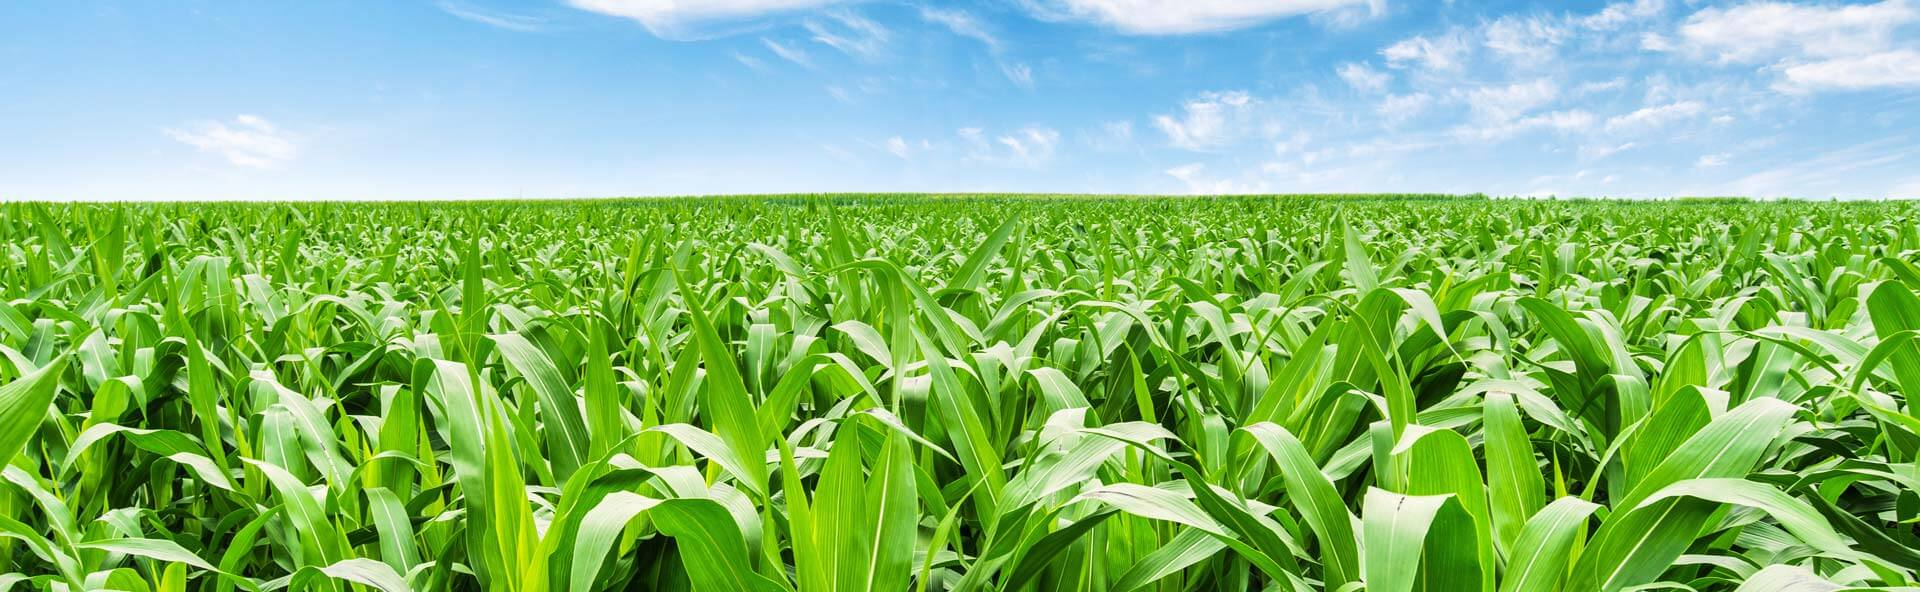 A bright blue field with white clouds above a long and wide green field with tall healthy crops